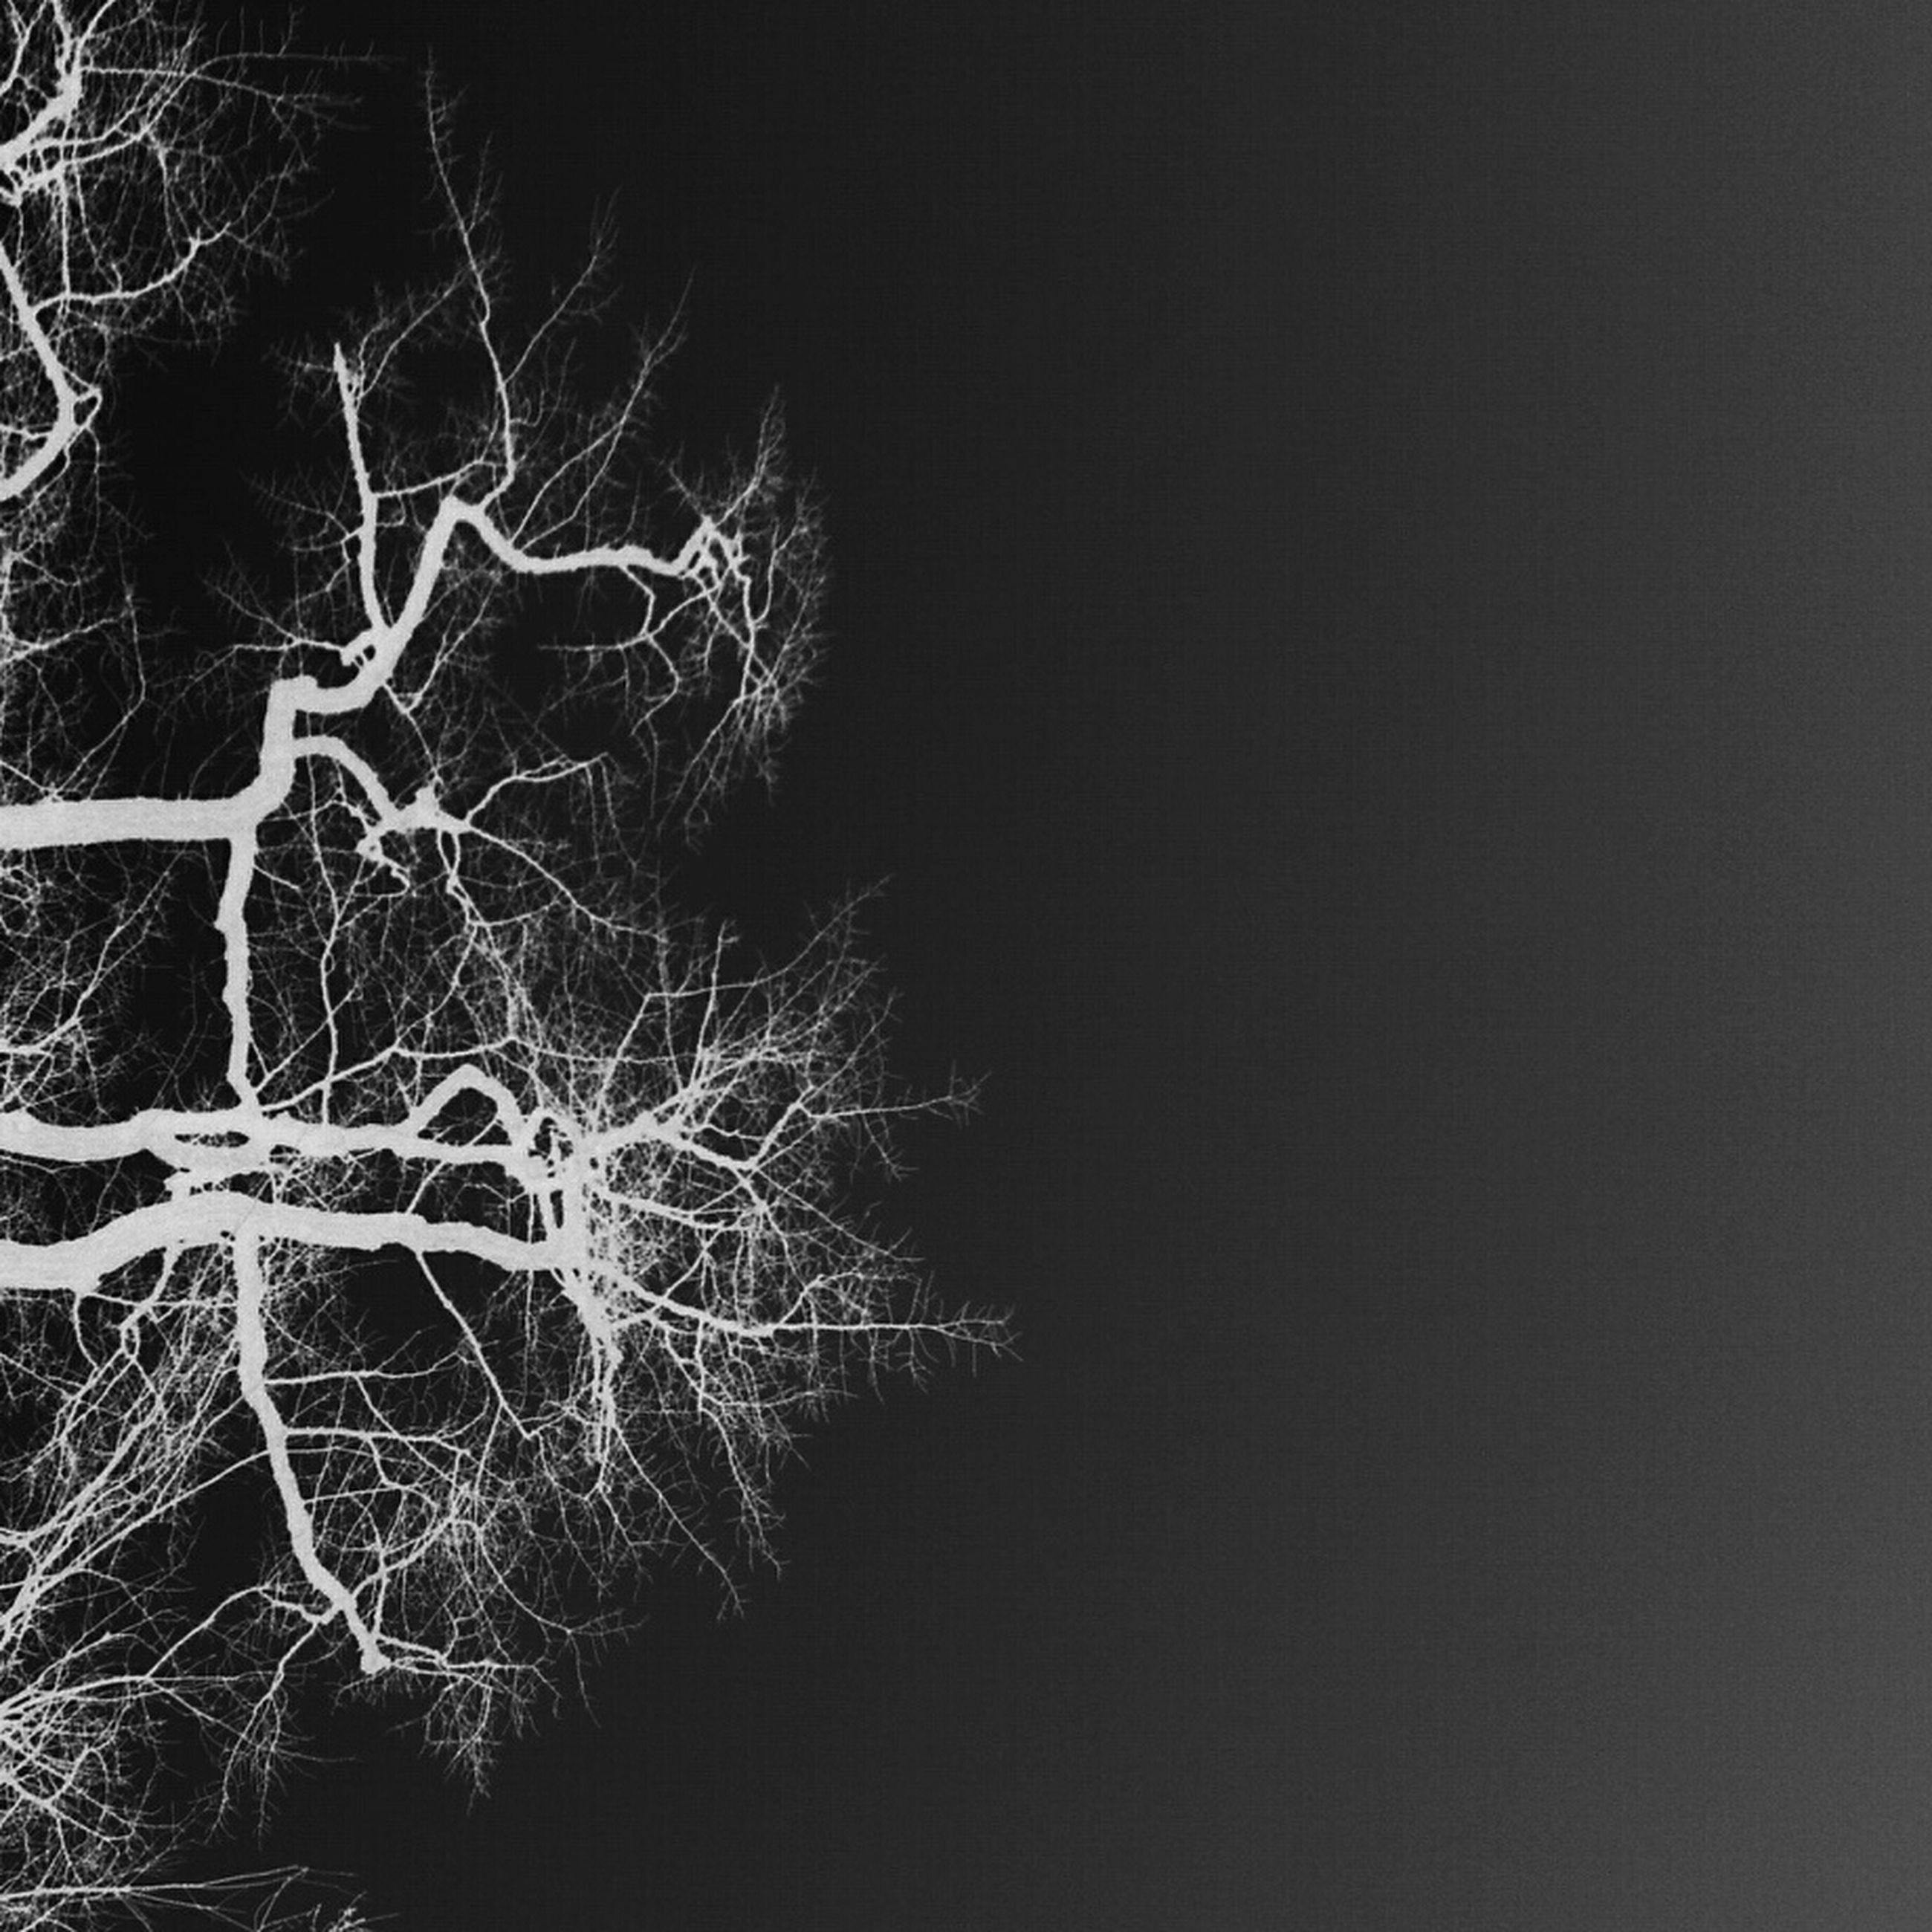 night, low angle view, branch, close-up, nature, tree, outdoors, illuminated, no people, bare tree, dark, growth, copy space, abstract, beauty in nature, pattern, black background, long exposure, clear sky, sky